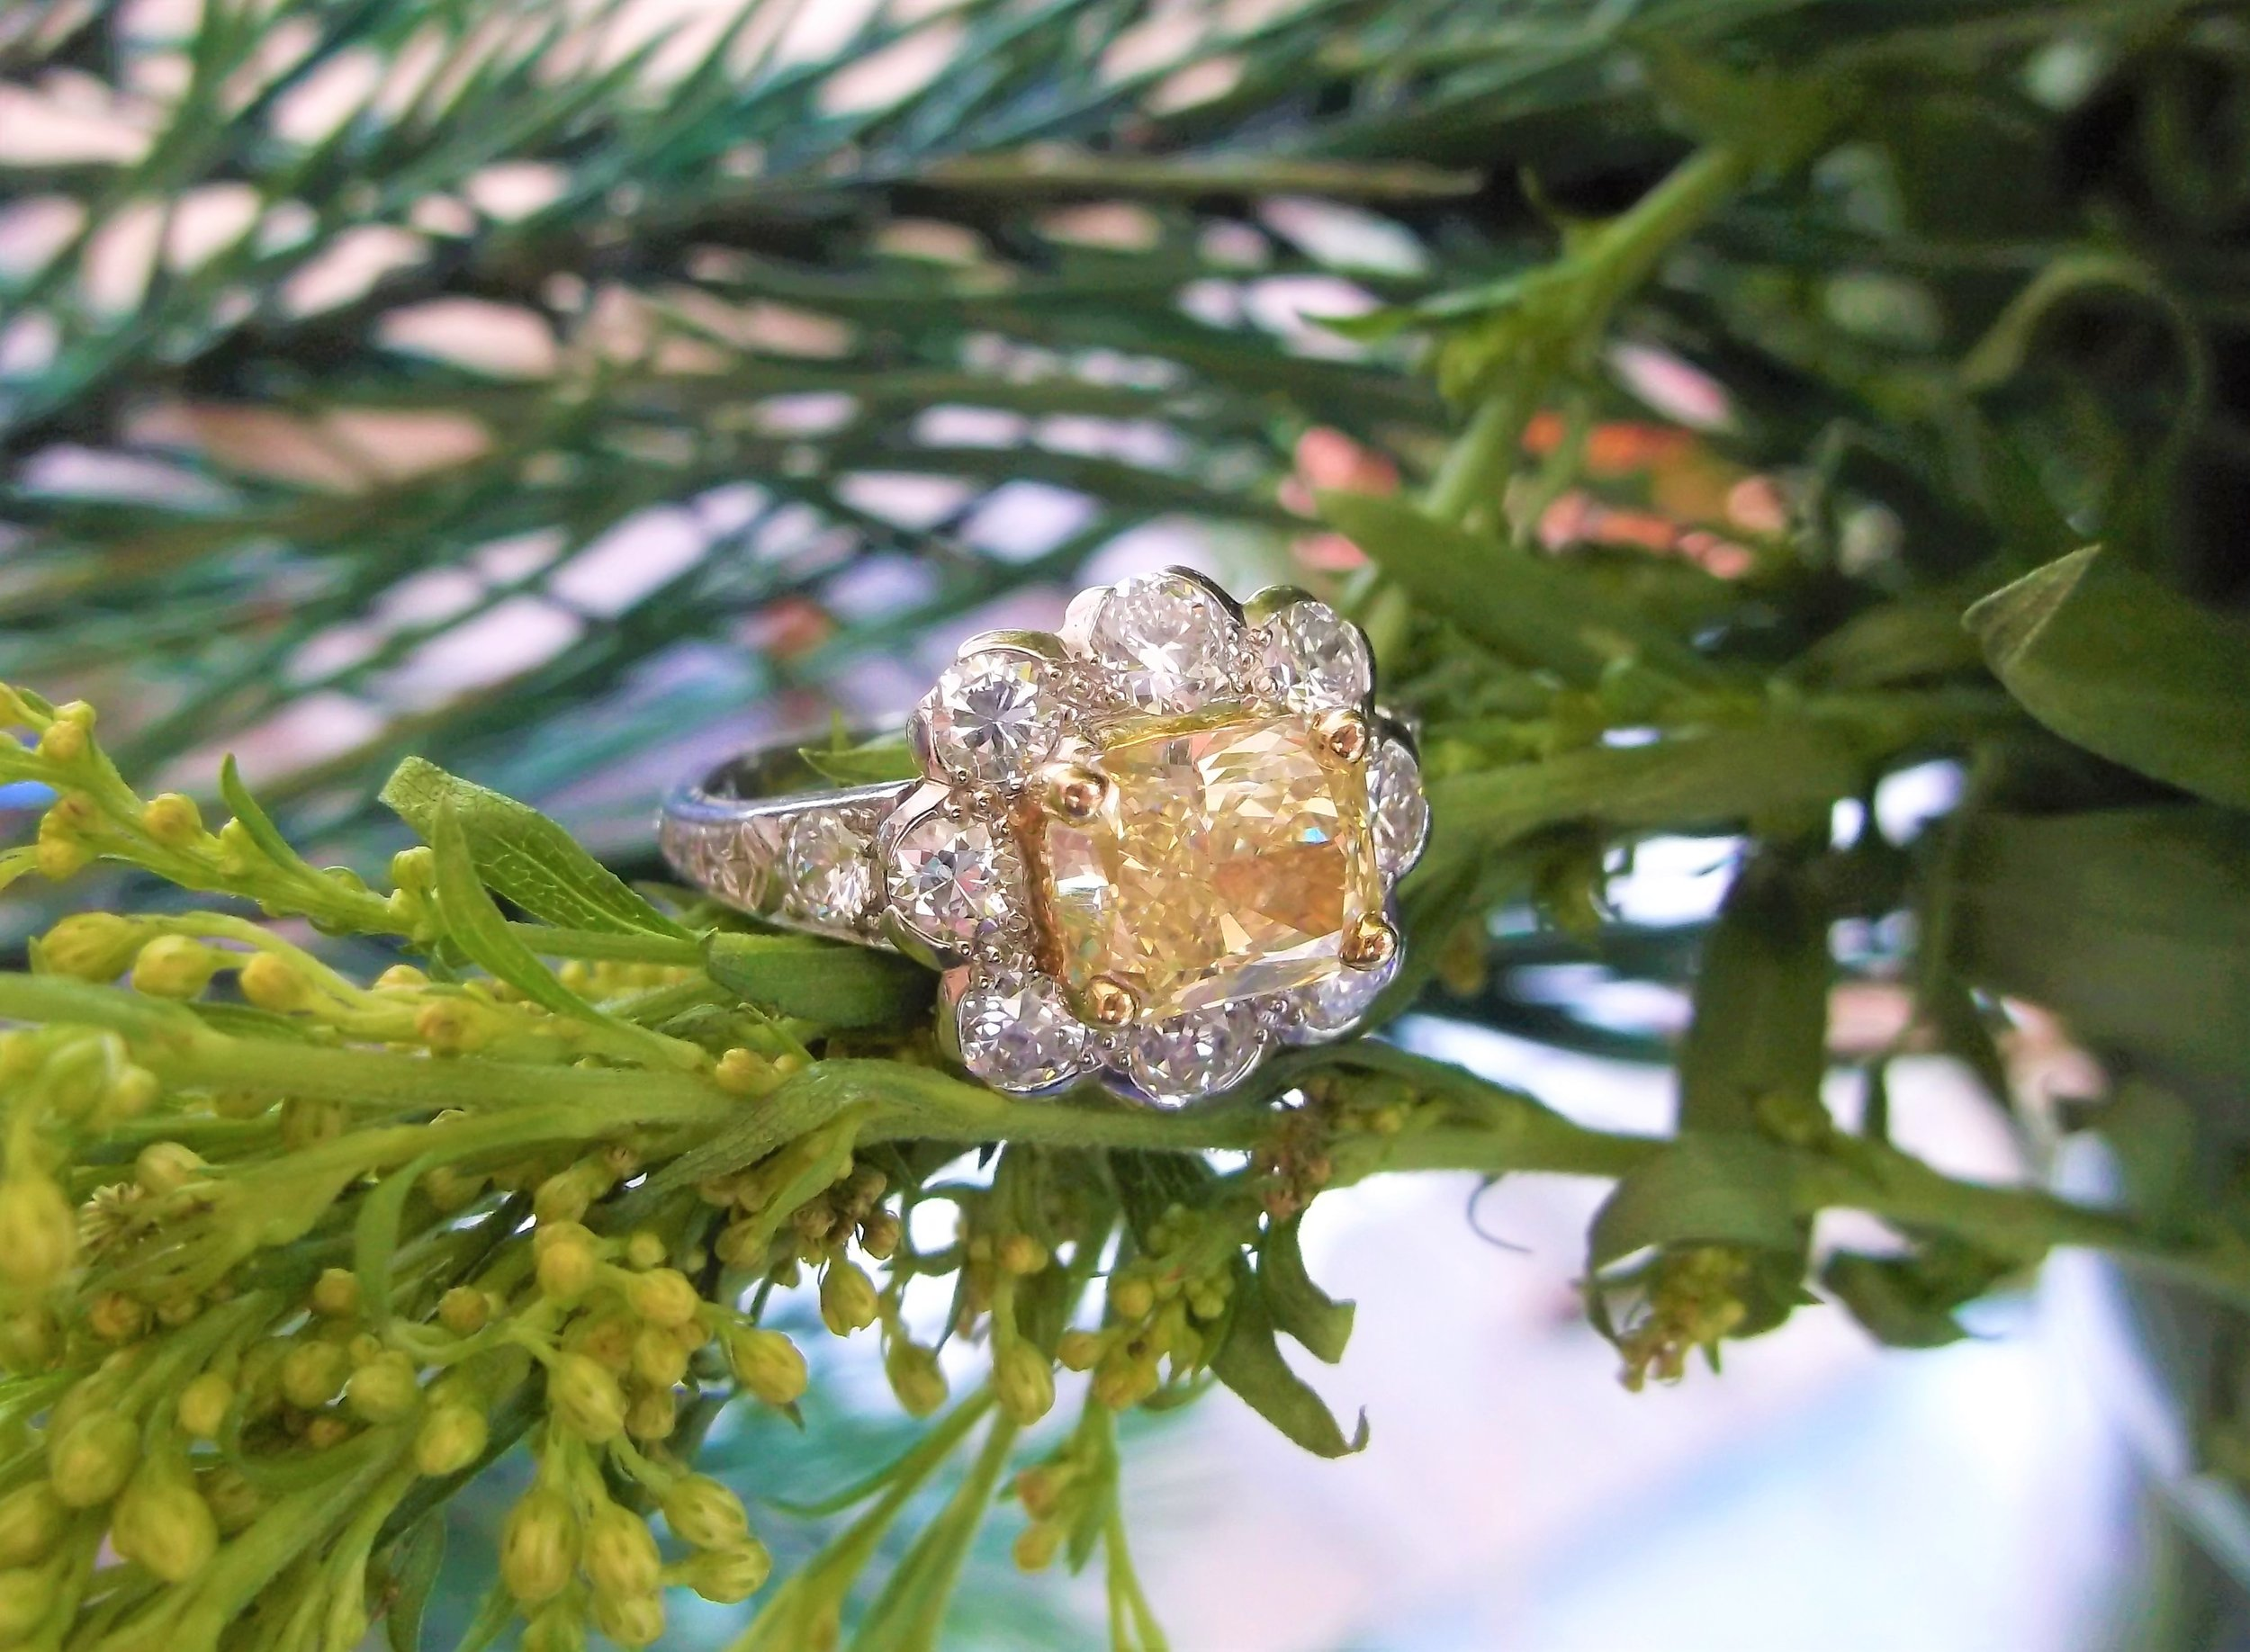 SOLD - Enchanting 1.61 carat yellow diamond set in a platinum mounting with 1.25 carats total weight in round brilliant cut diamonds.